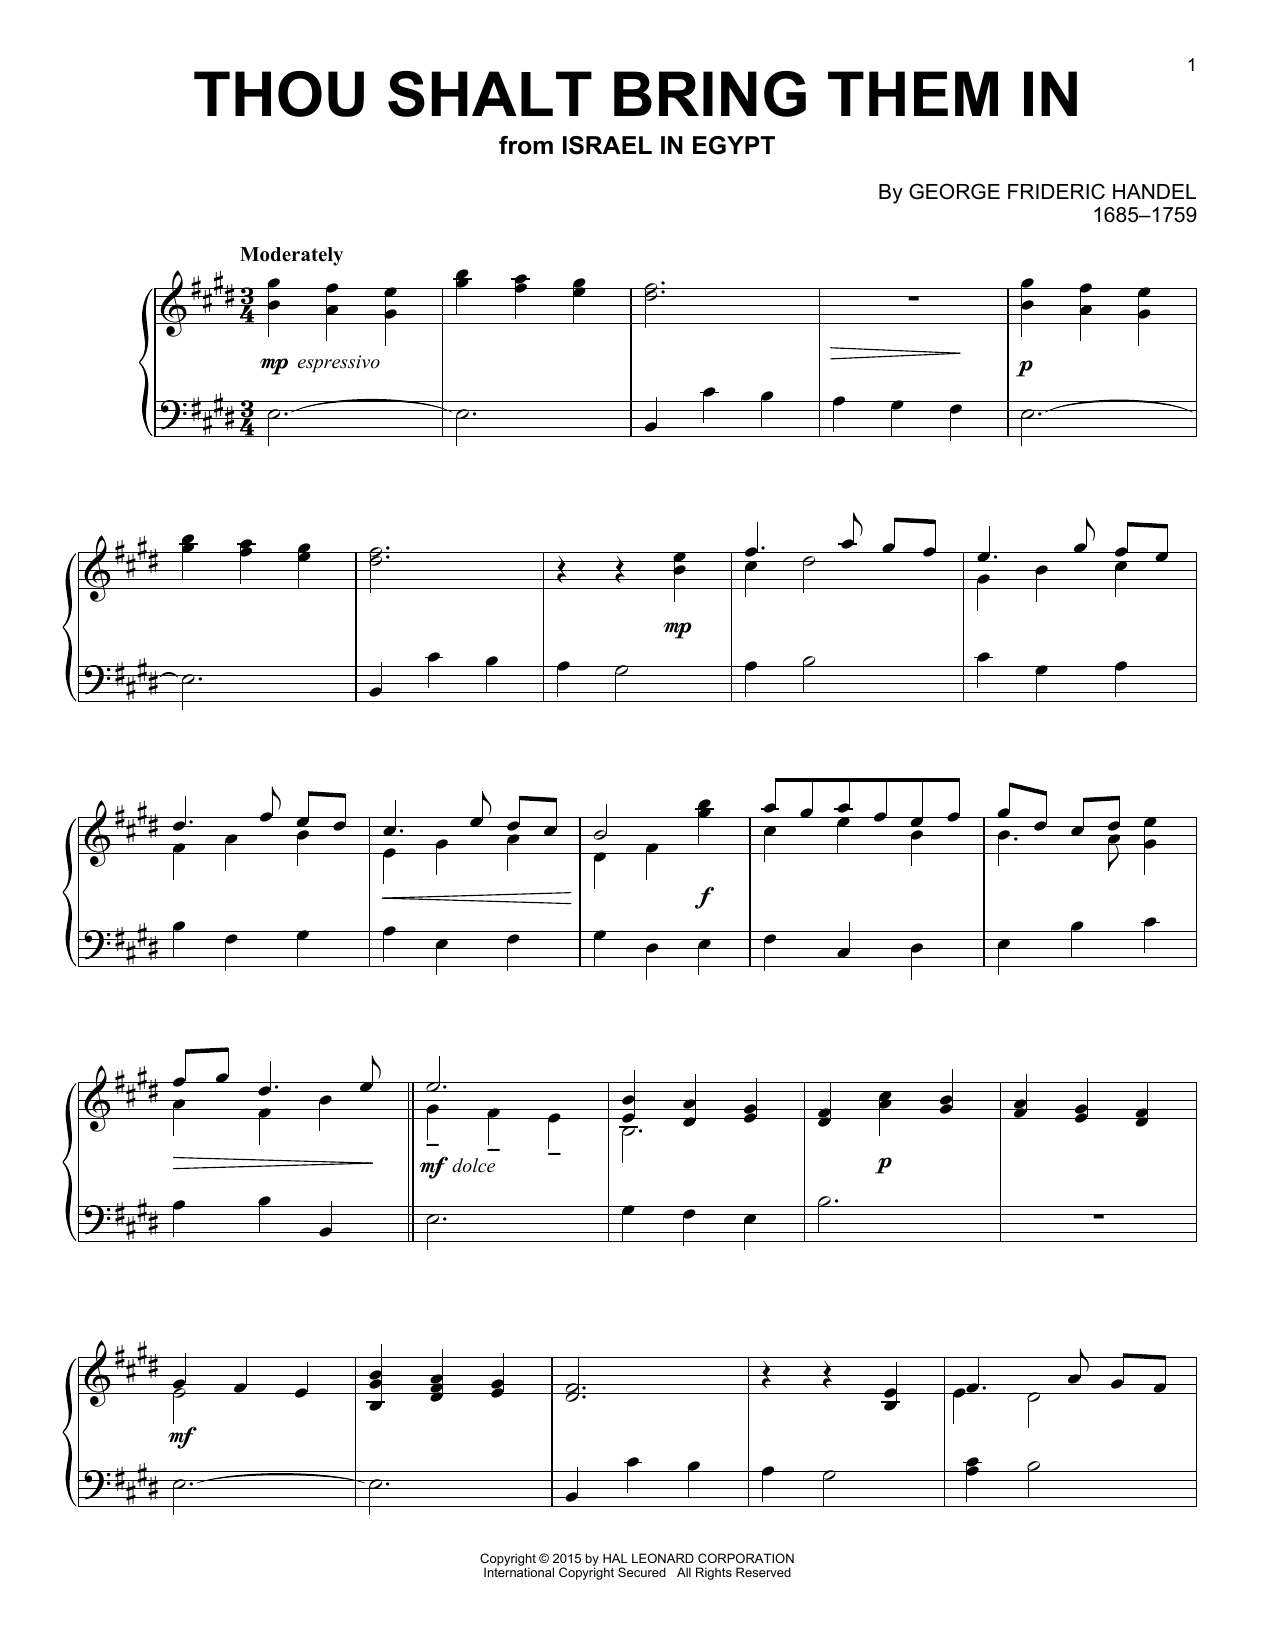 Download George Frideric Handel 'Thou Shalt Bring Them In' Digital Sheet Music Notes & Chords and start playing in minutes